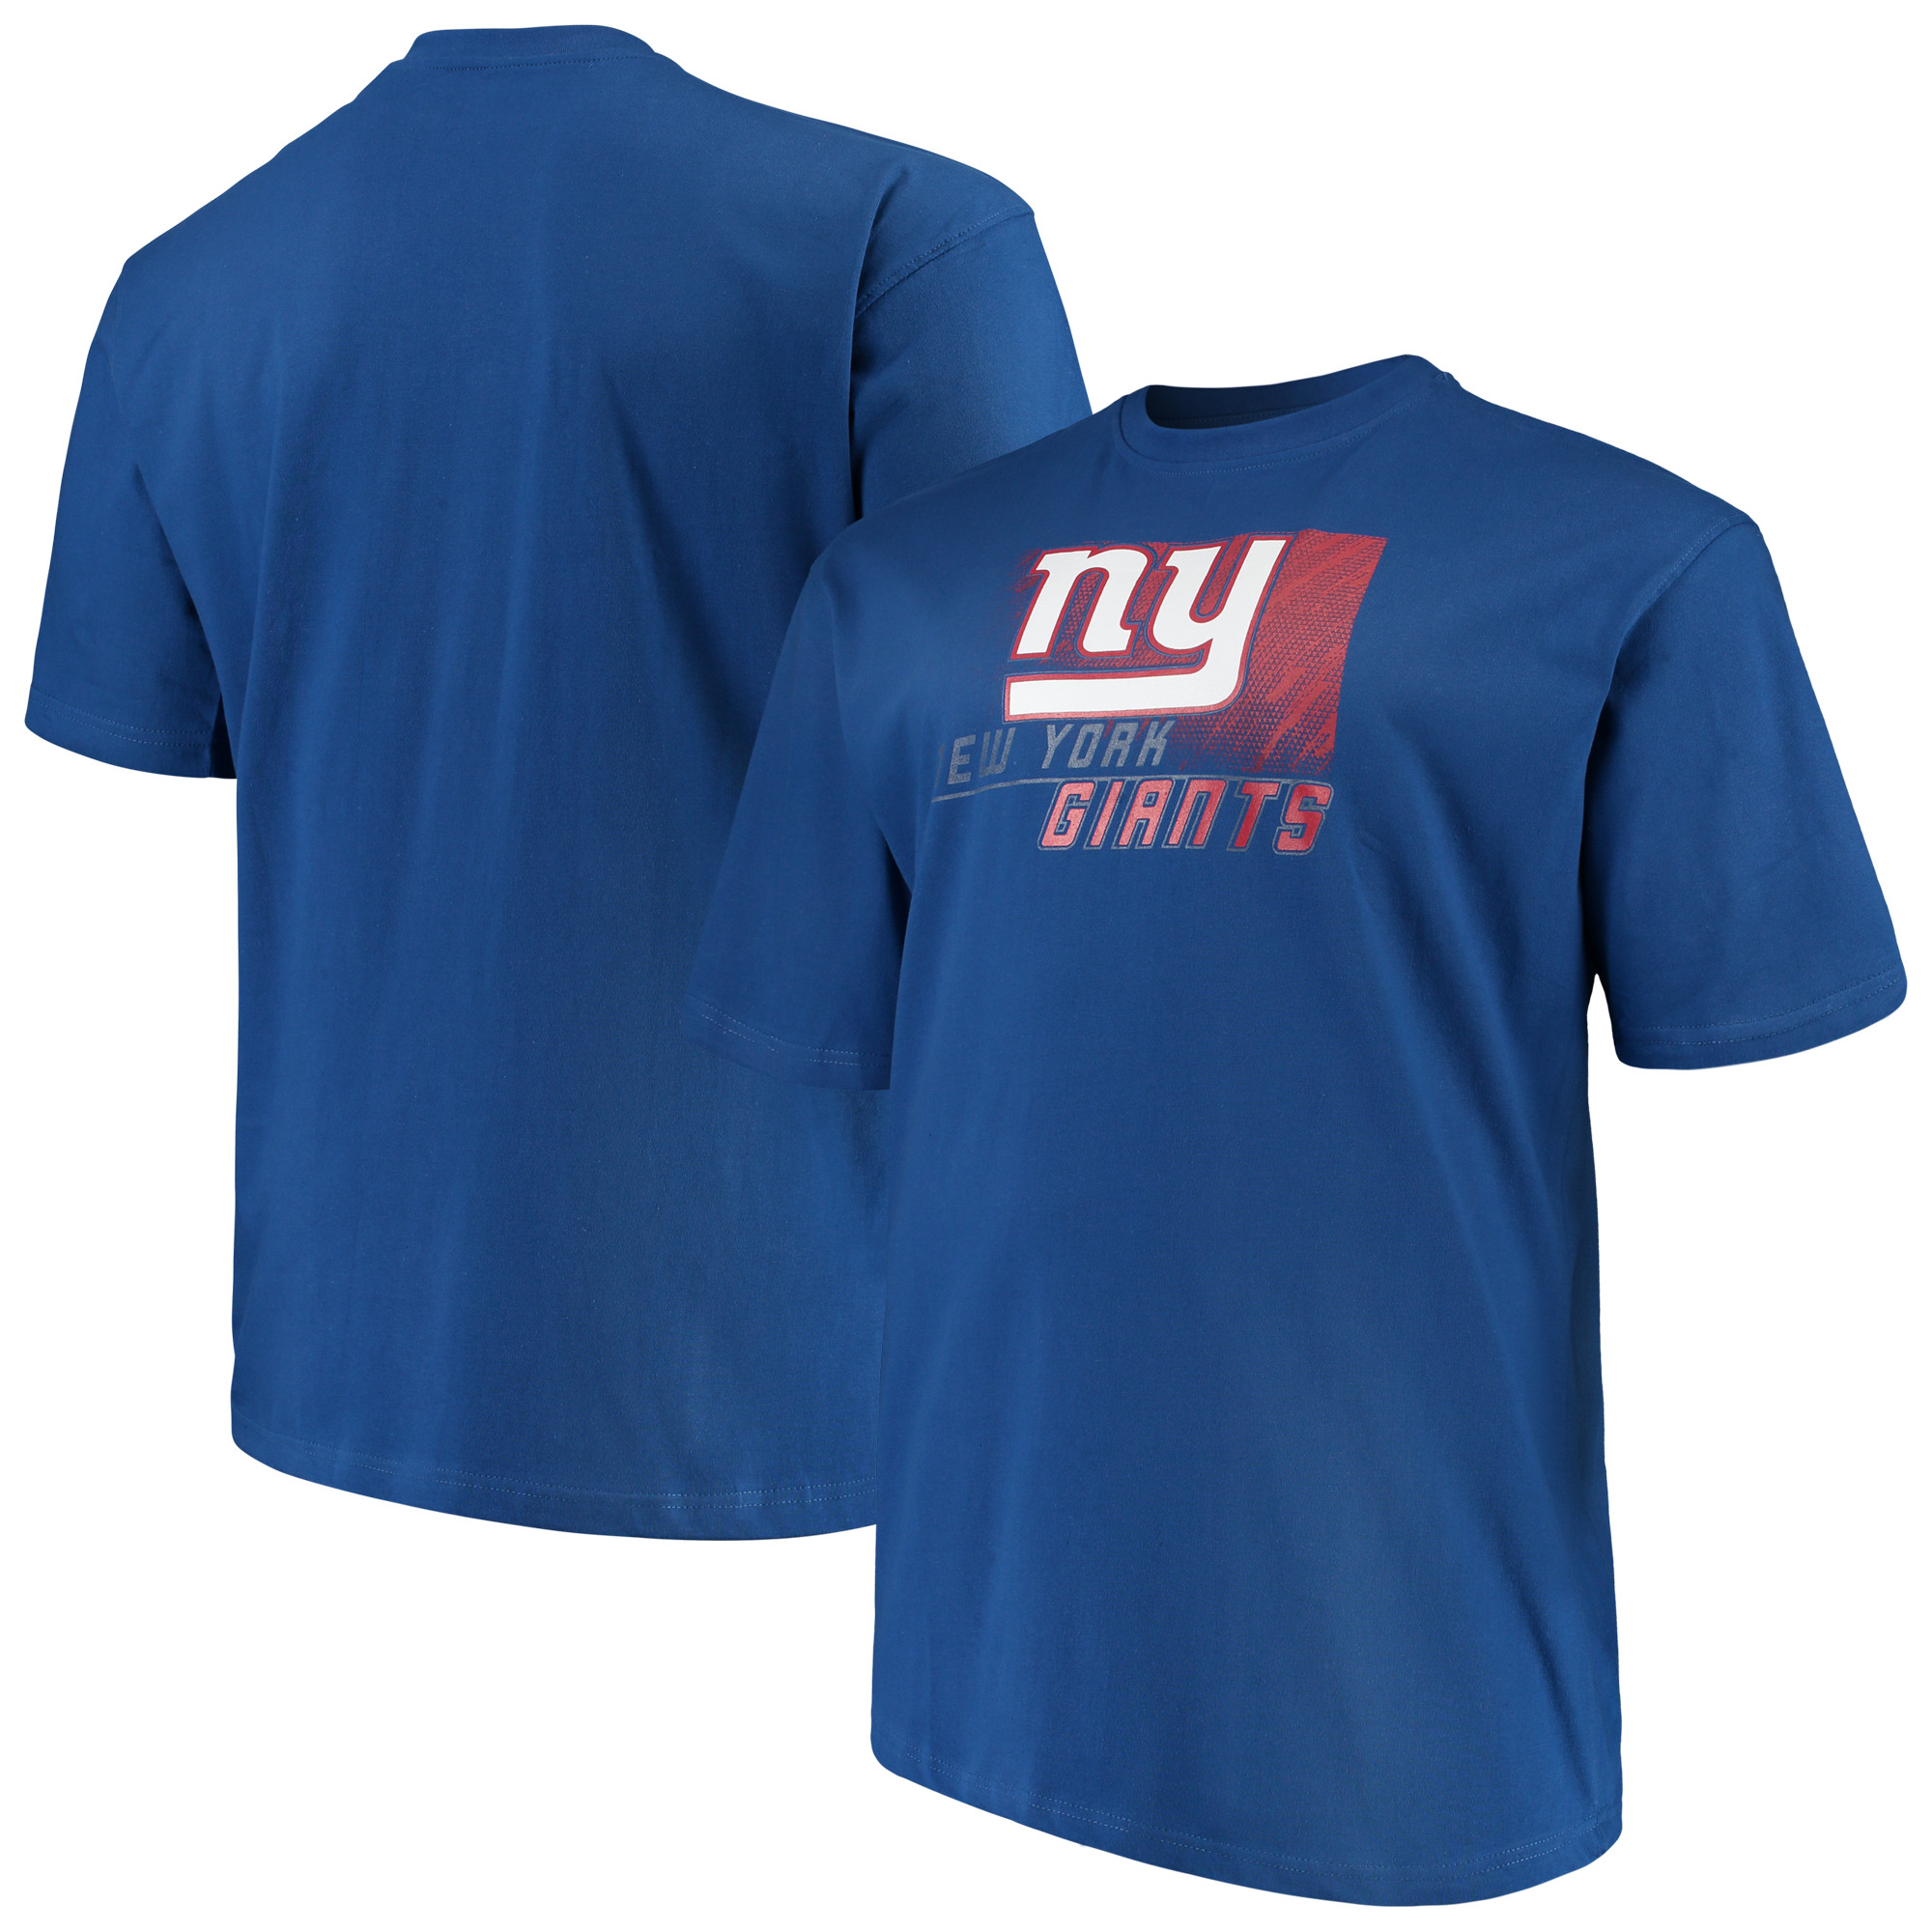 Men's Majestic Royal New York Giants Big & Tall Reflective T-Shirt